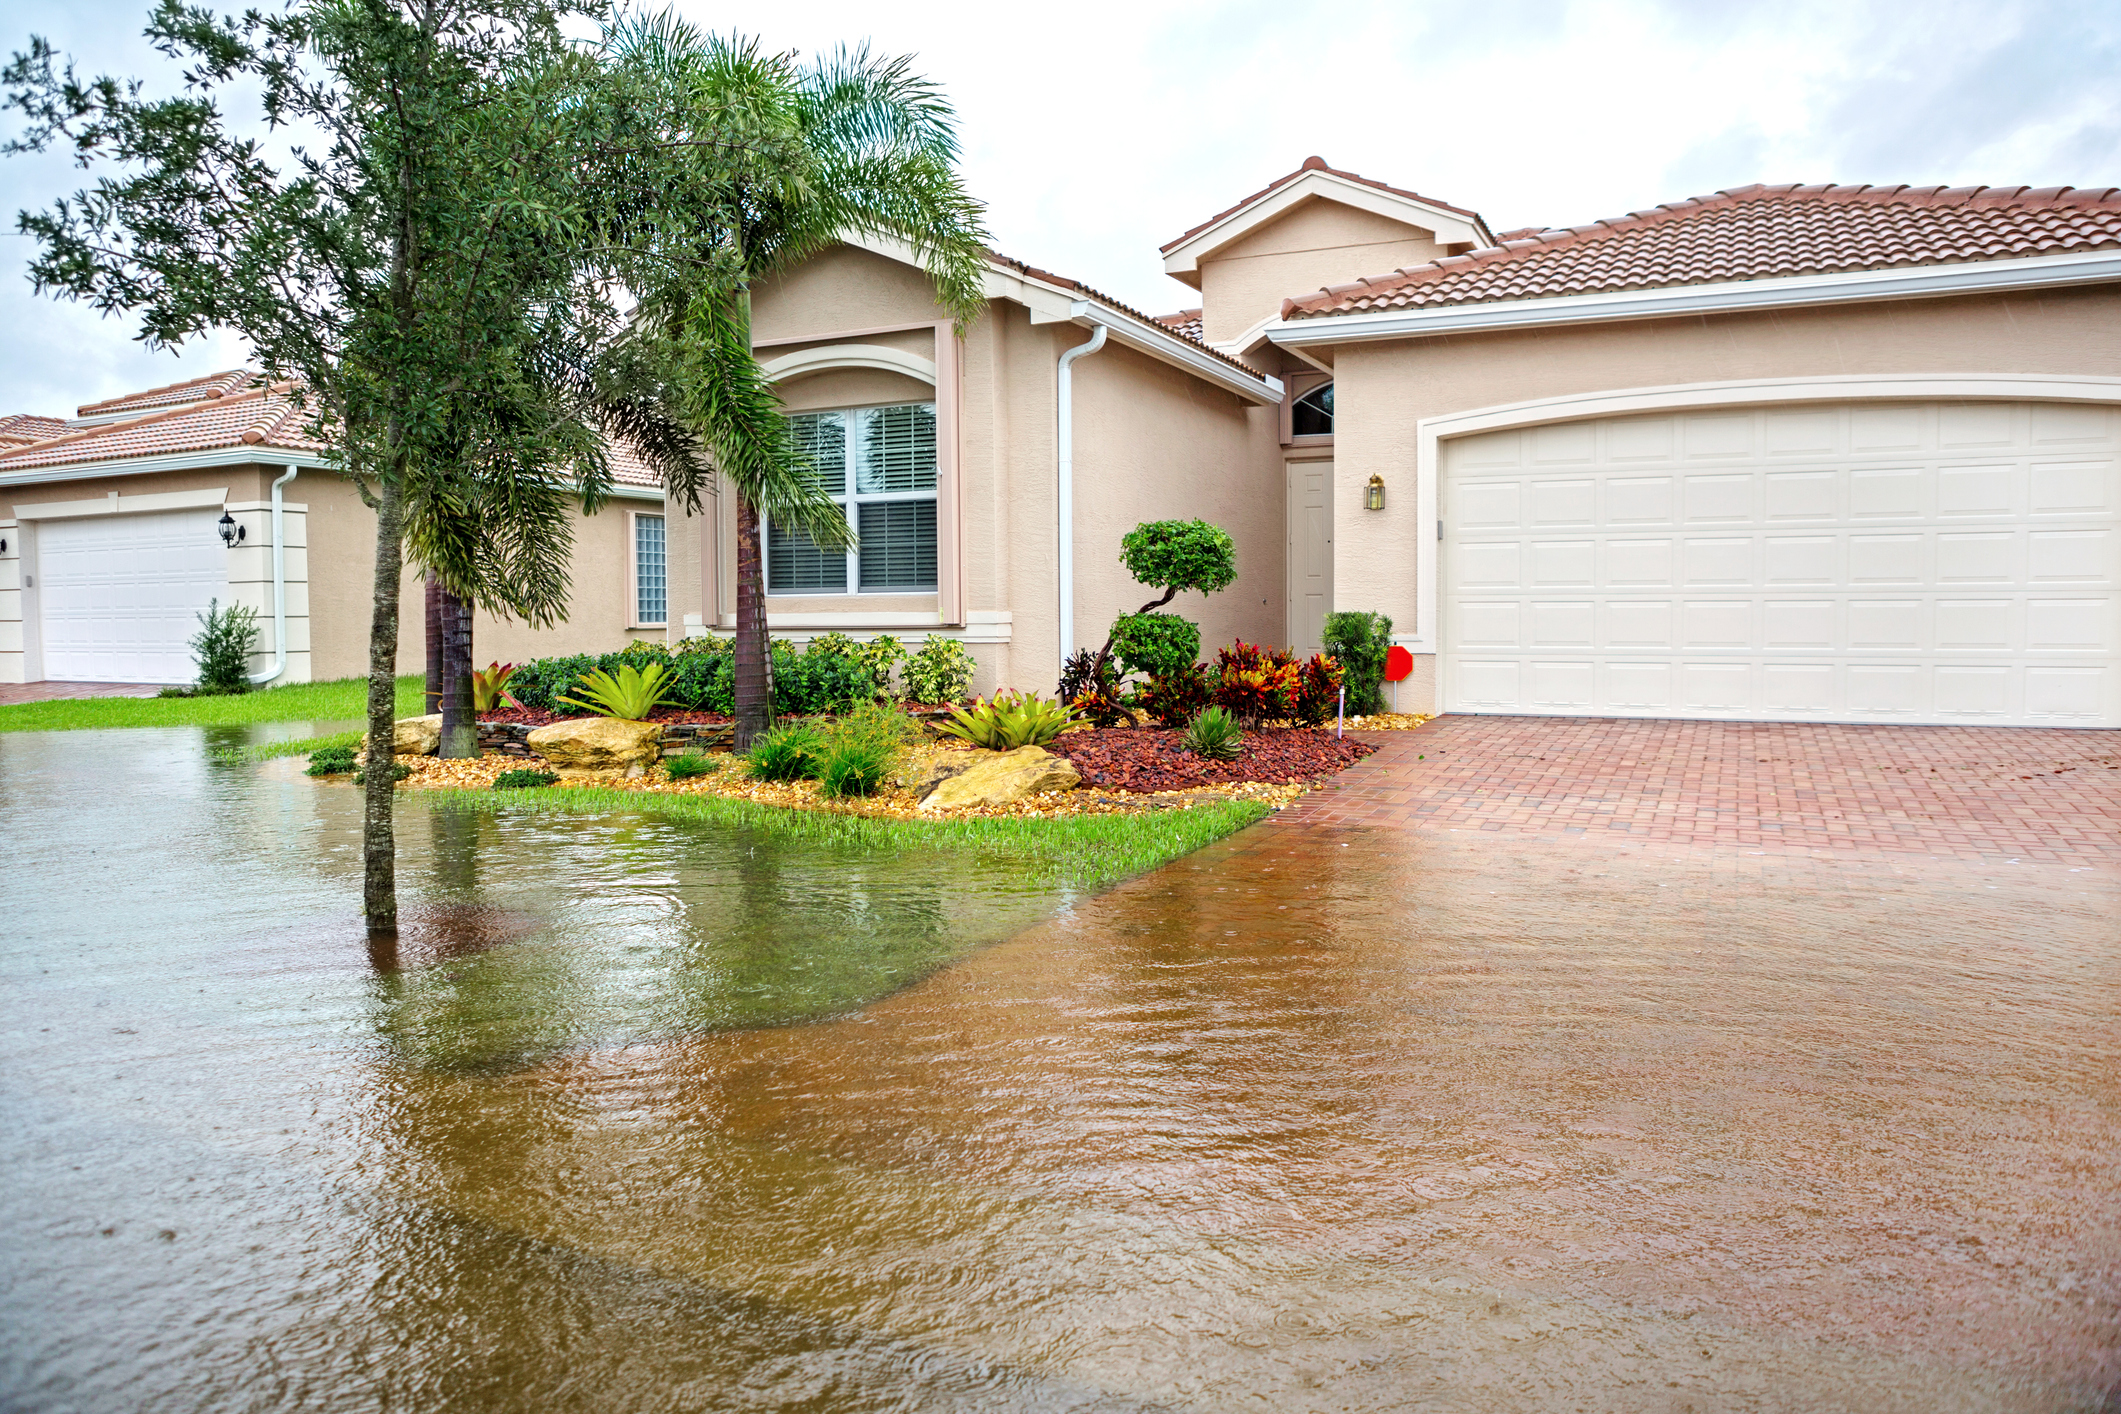 When it comes to water damage, the professionals at Disaster Restoration Services in Bridgeport know how to take over the problem and help you move forward quickly and safely.